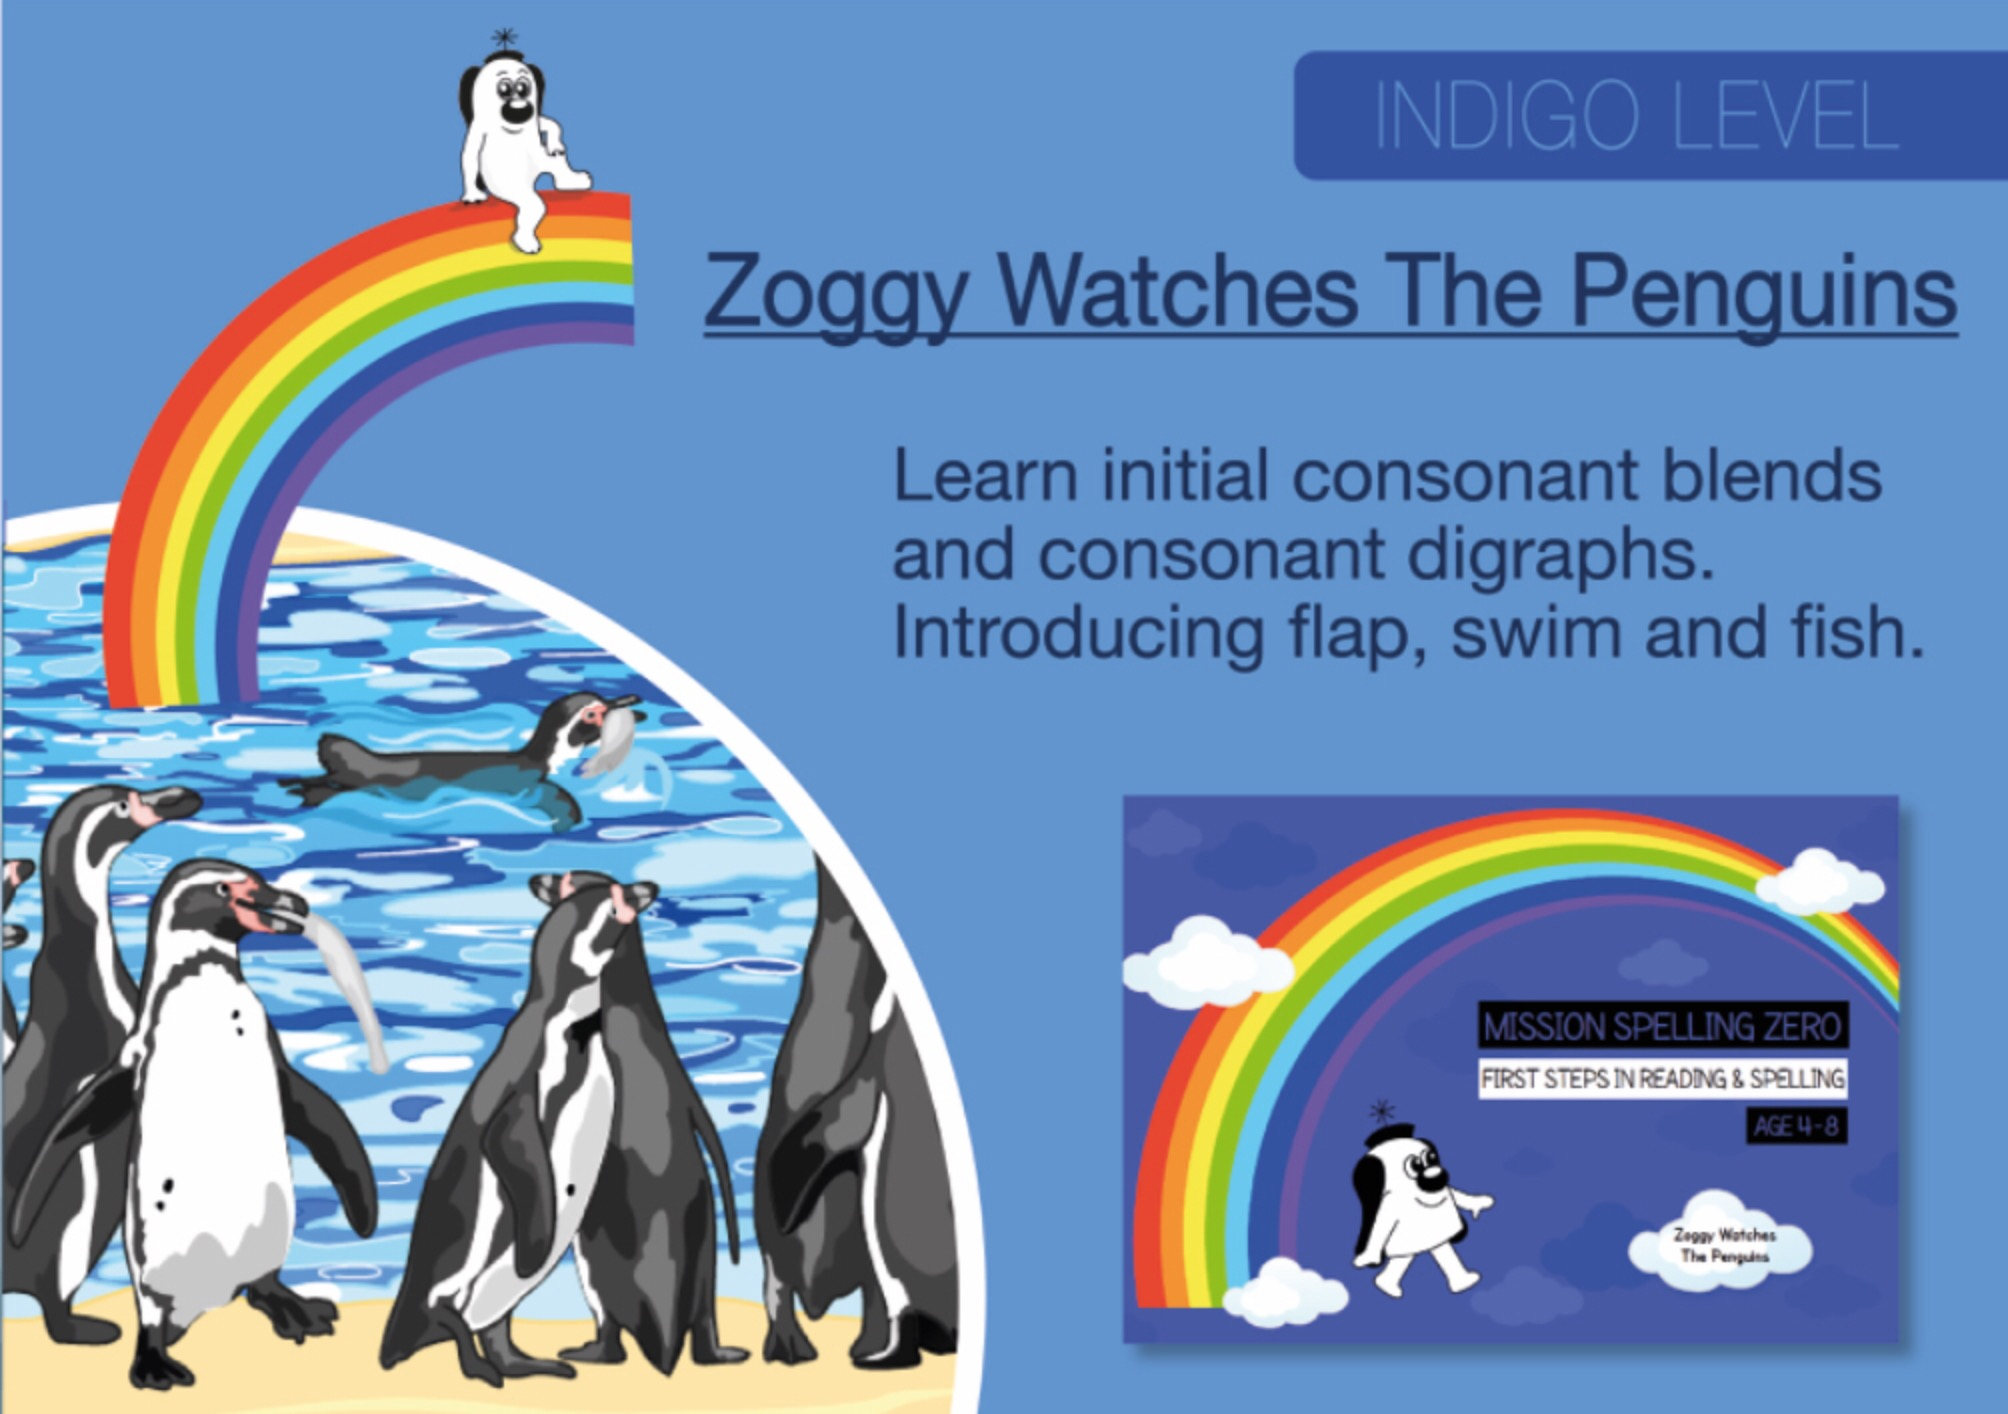 Initial Consonant Blends & Consonant Digraphs: Zoggy Watches The Penguins (Print Edition)